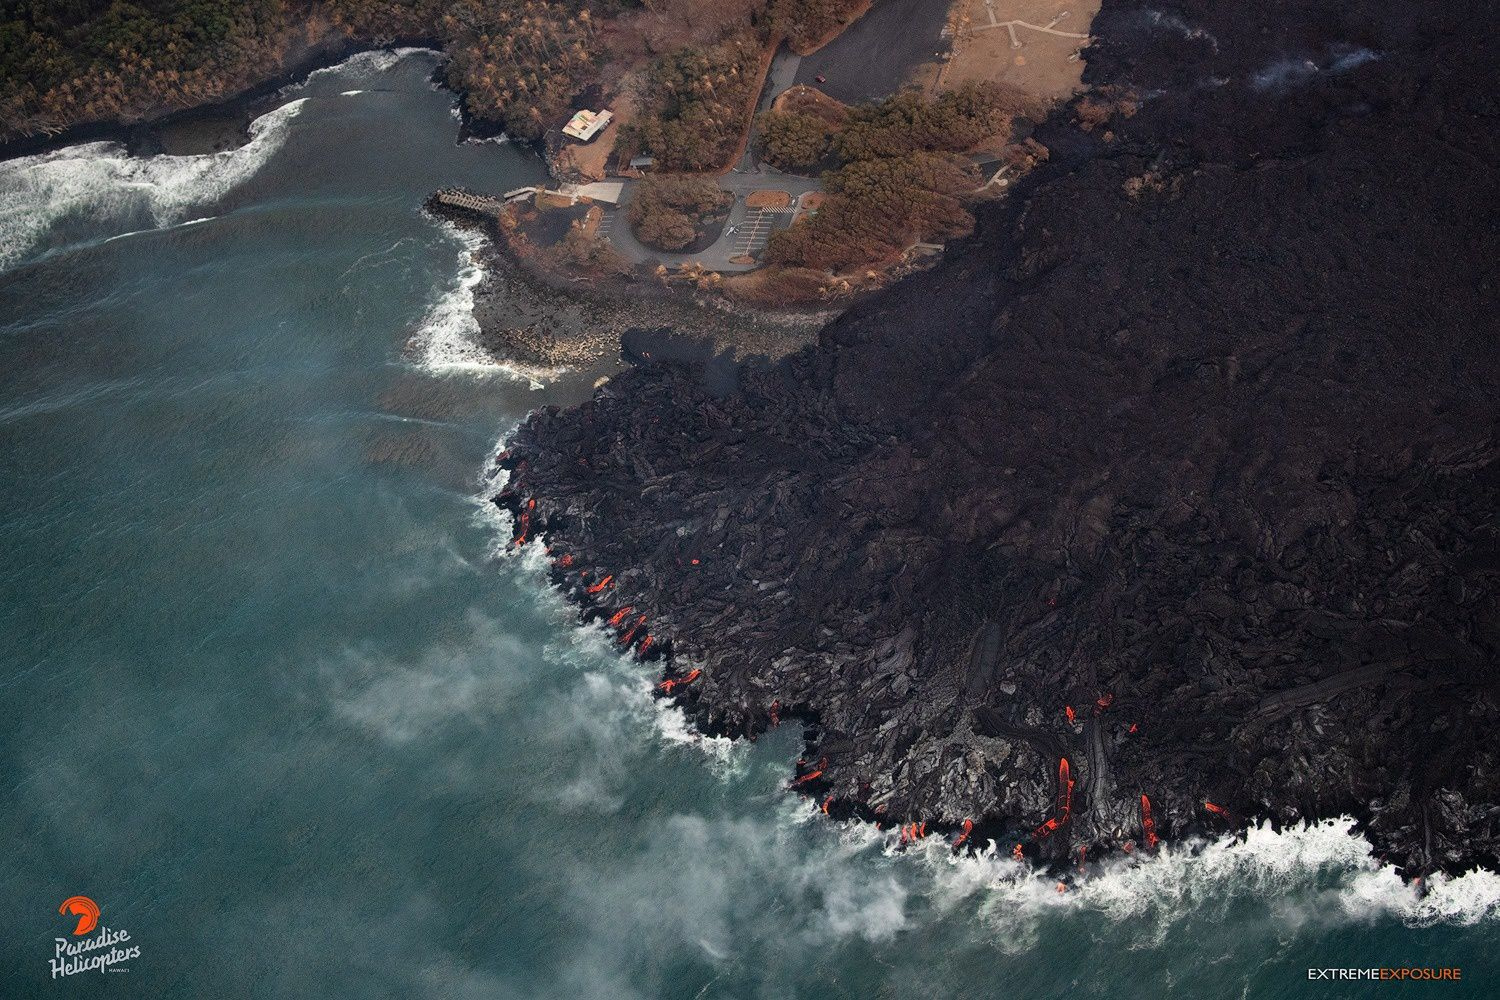 Kilauea - East rift zone - Activity on the rise near Pohoiki with many active lava entries - photo 06.08.2018 Bruce Omori